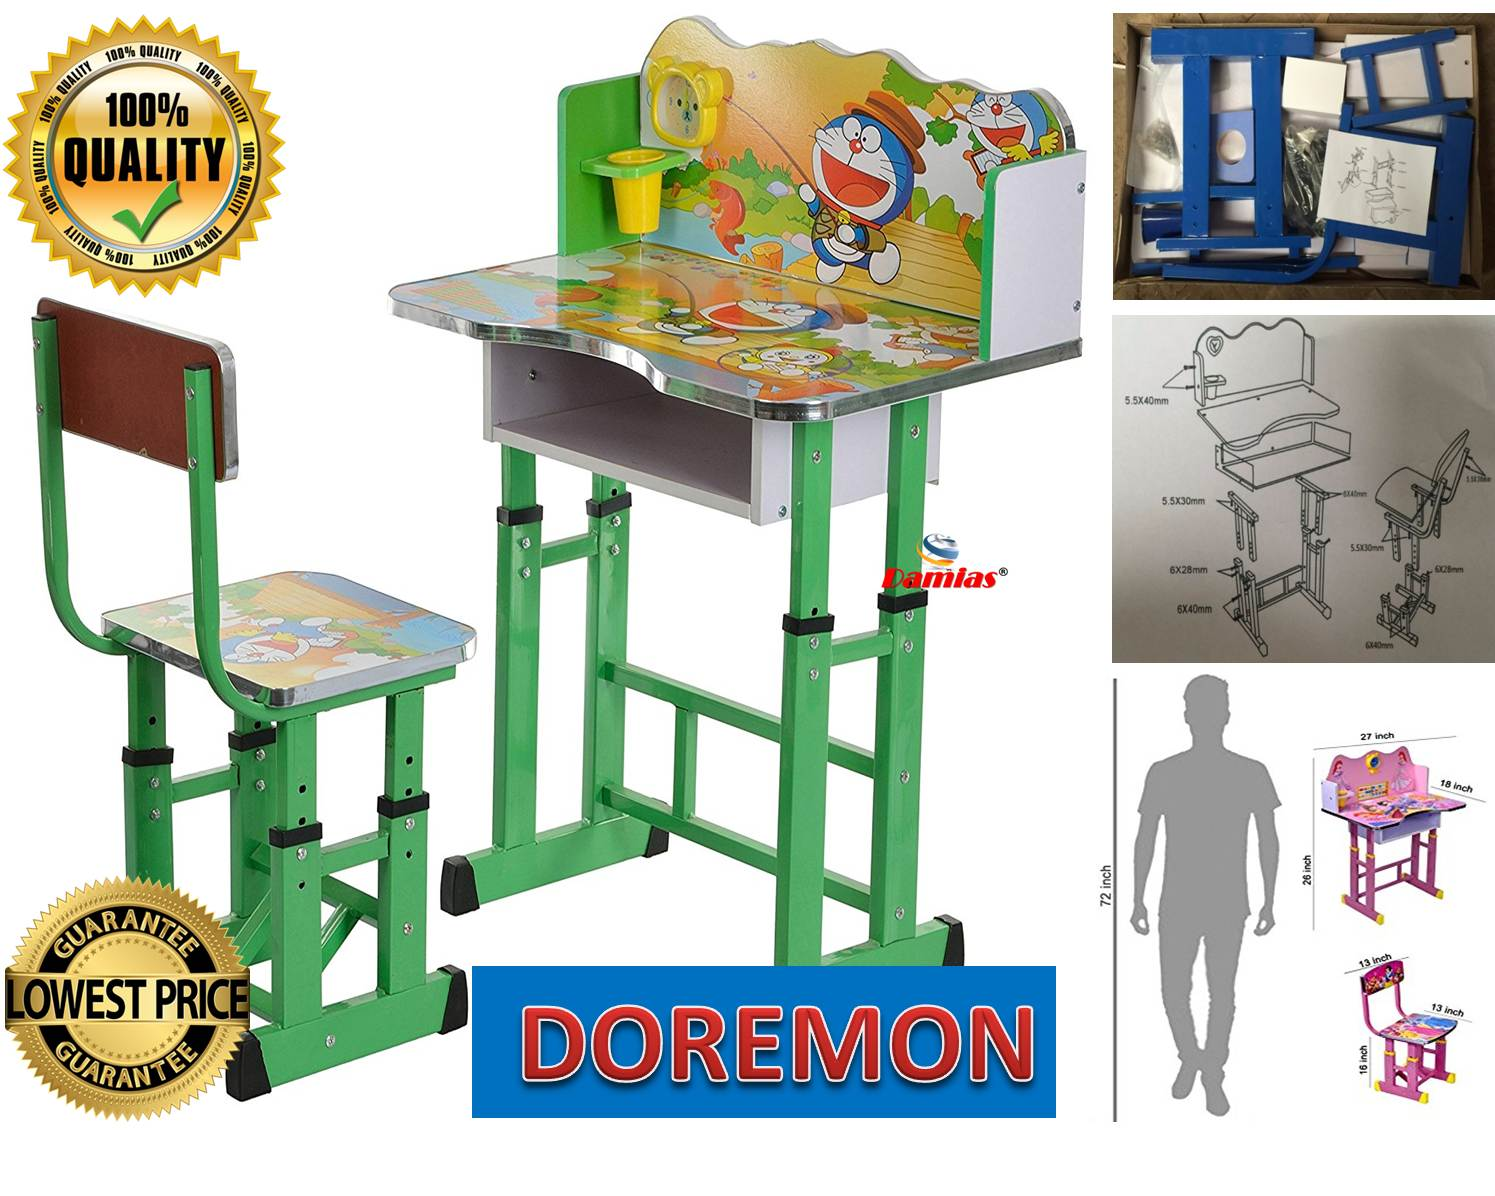 05b819fd9 Study Table and Chair Kid Set with Cartoon Theme   GREEN DOREMON